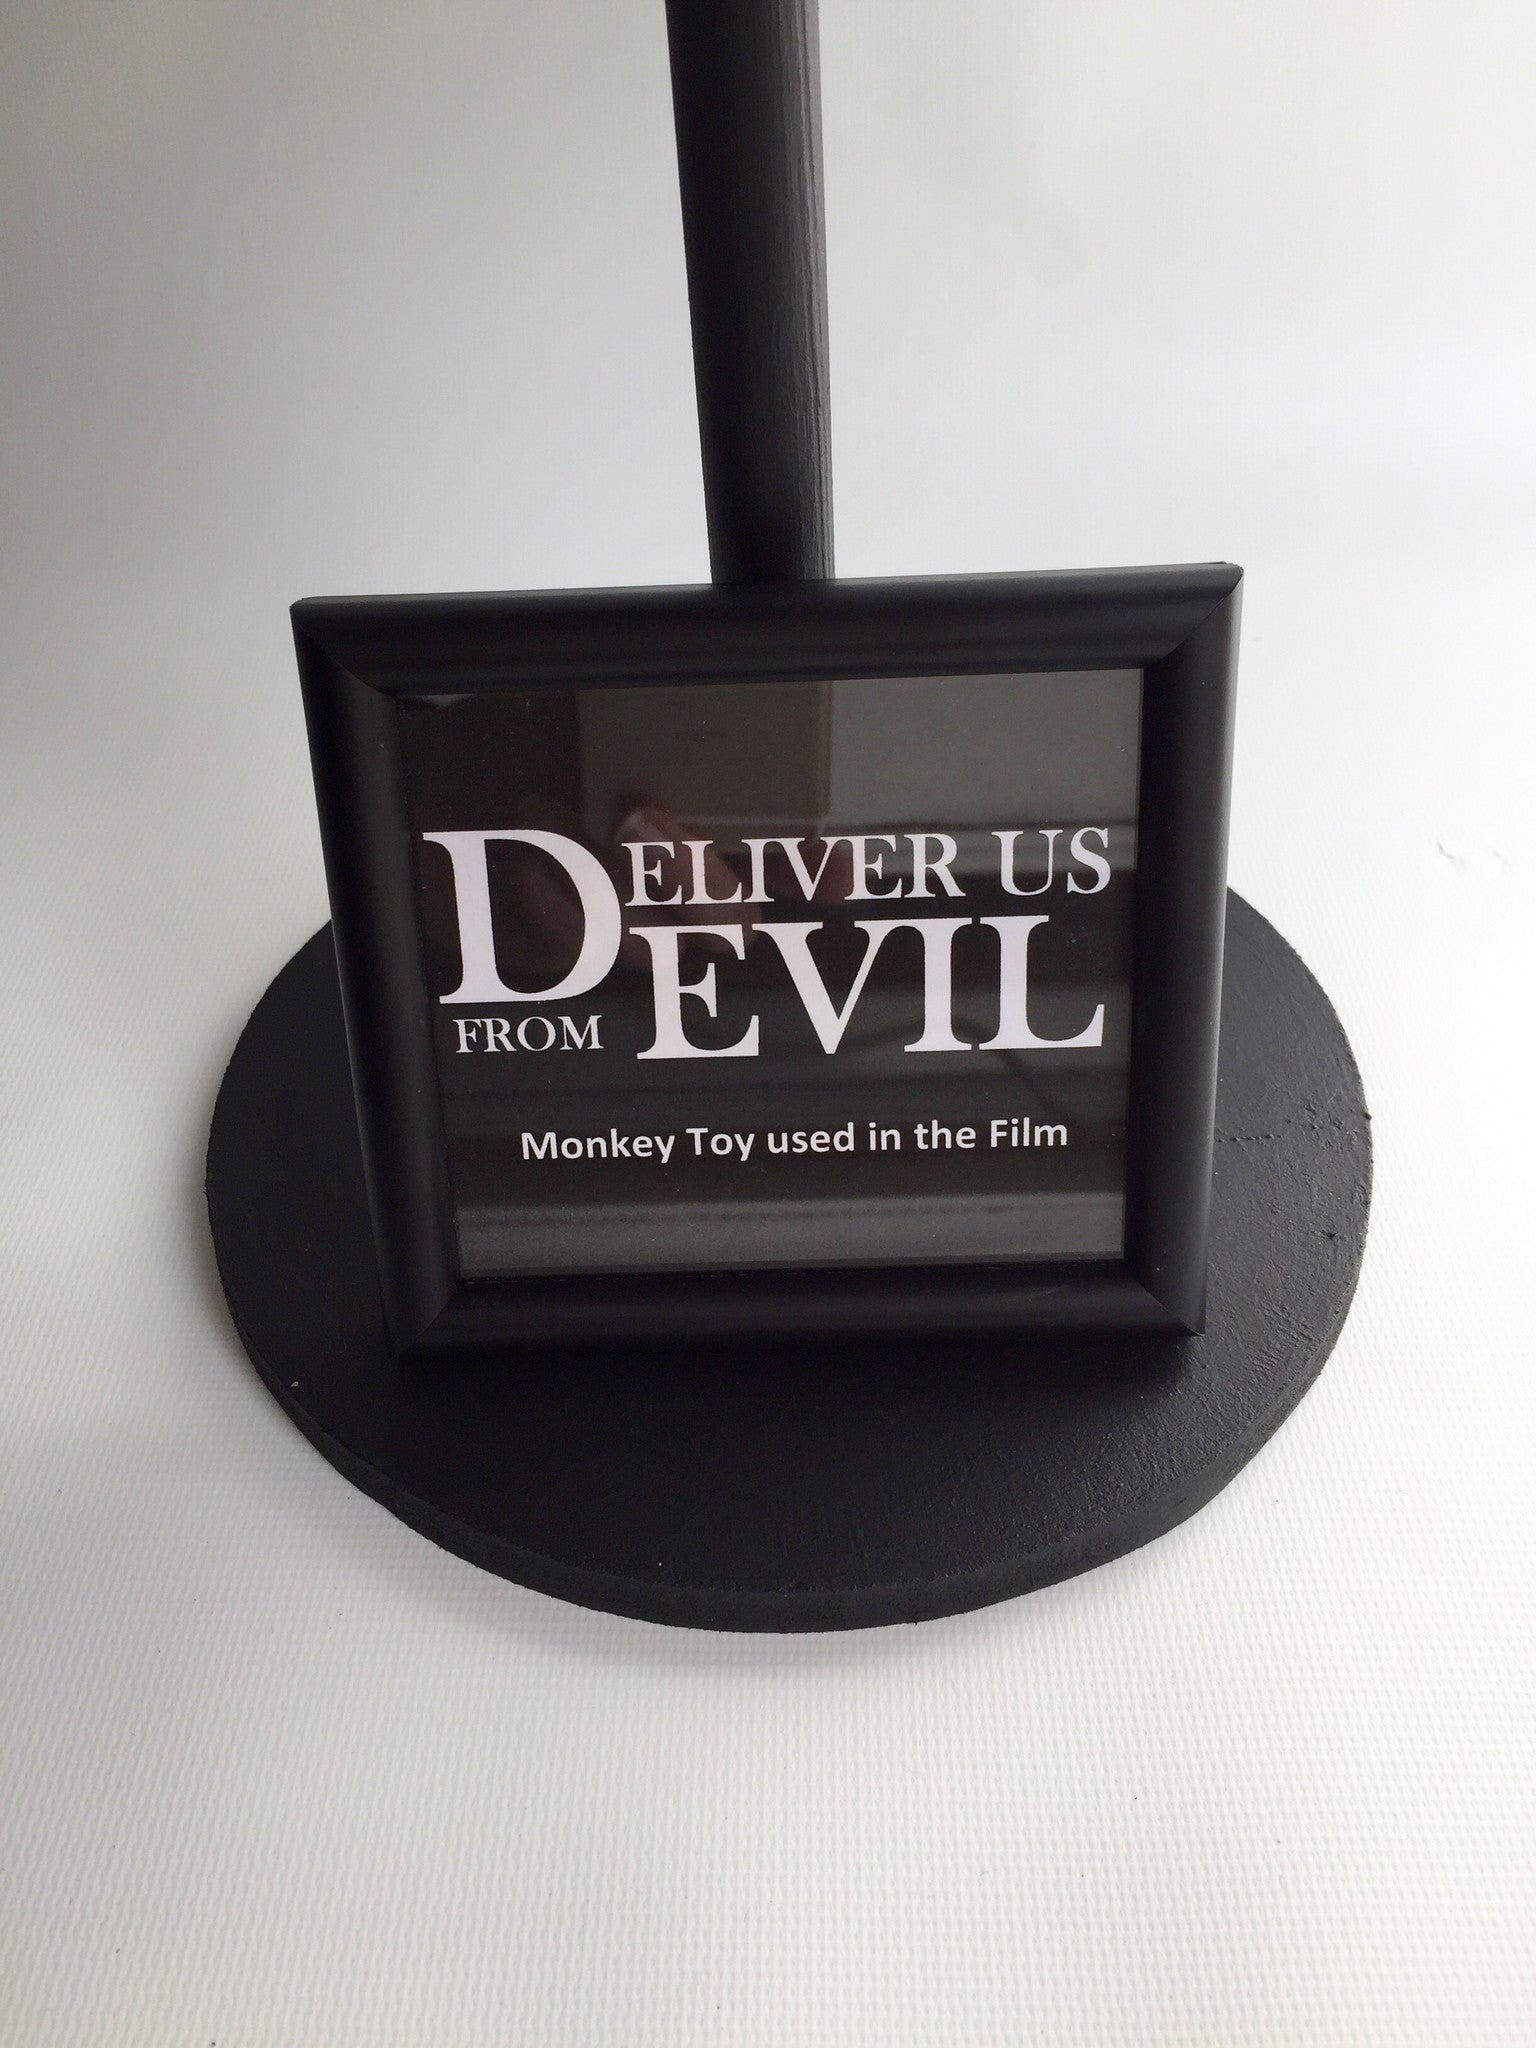 Deliver us from Evil (2014) - Toy Monkey SOLD